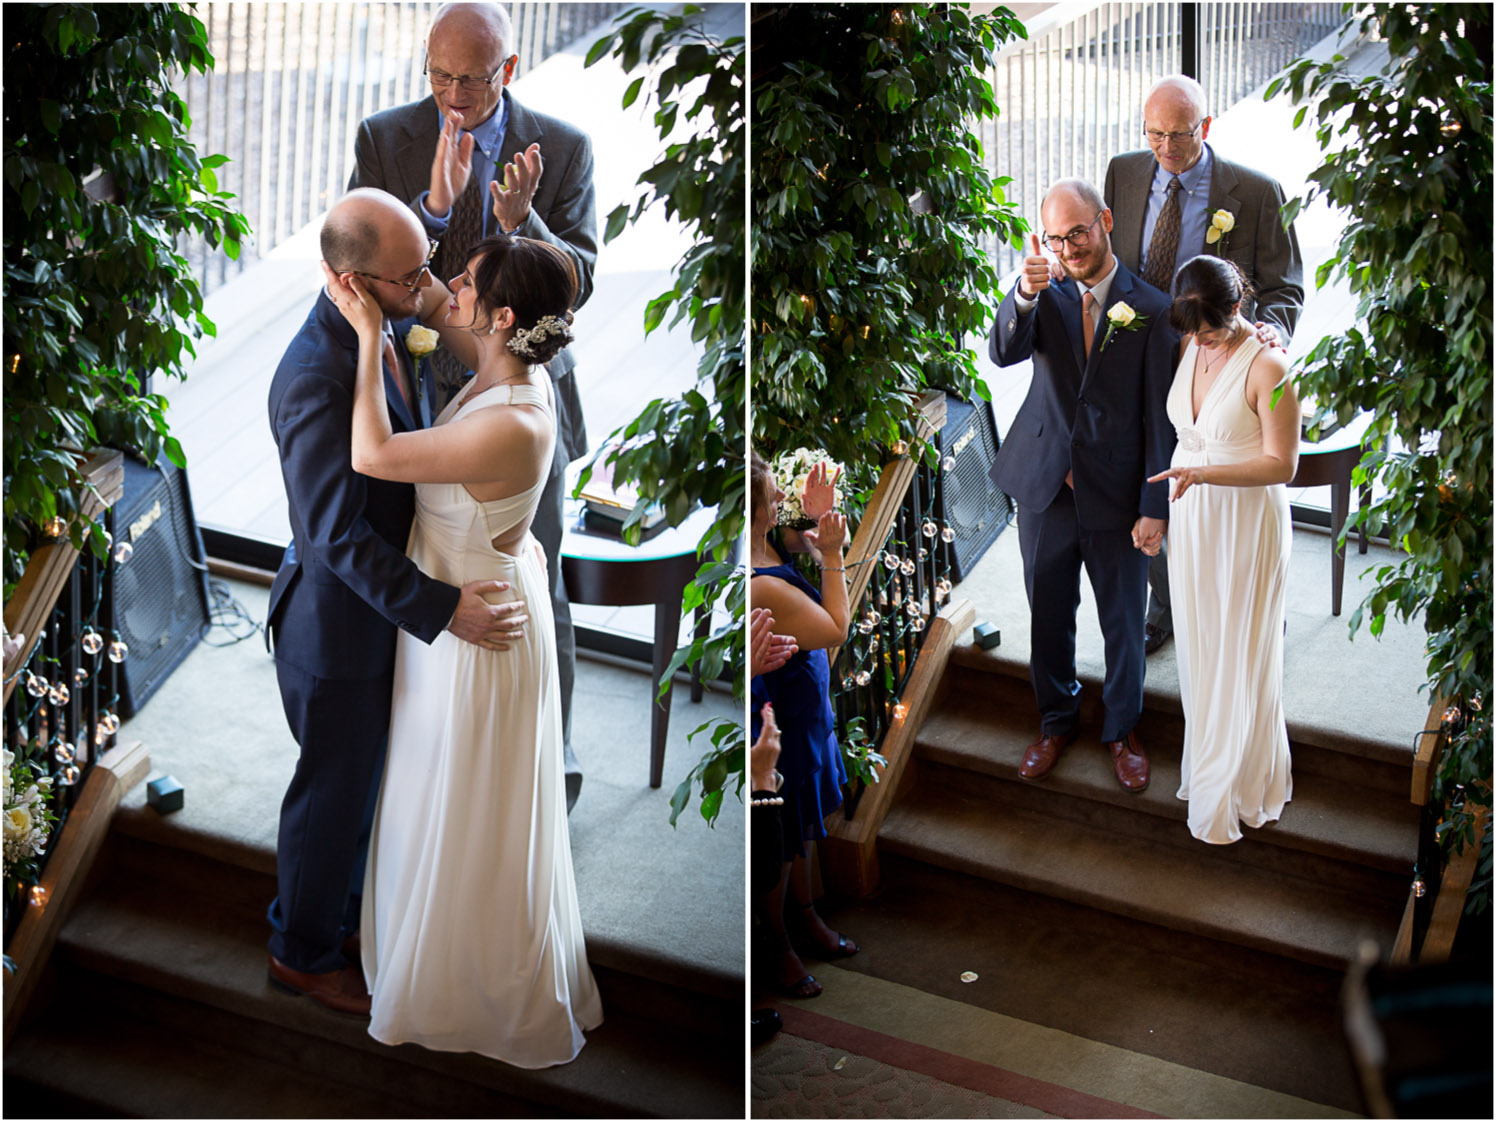 28-loring-green-minneapolis-minnesota-wedding-ceremony-first-kiss-thumbs-up-mahonen-photography.jpg